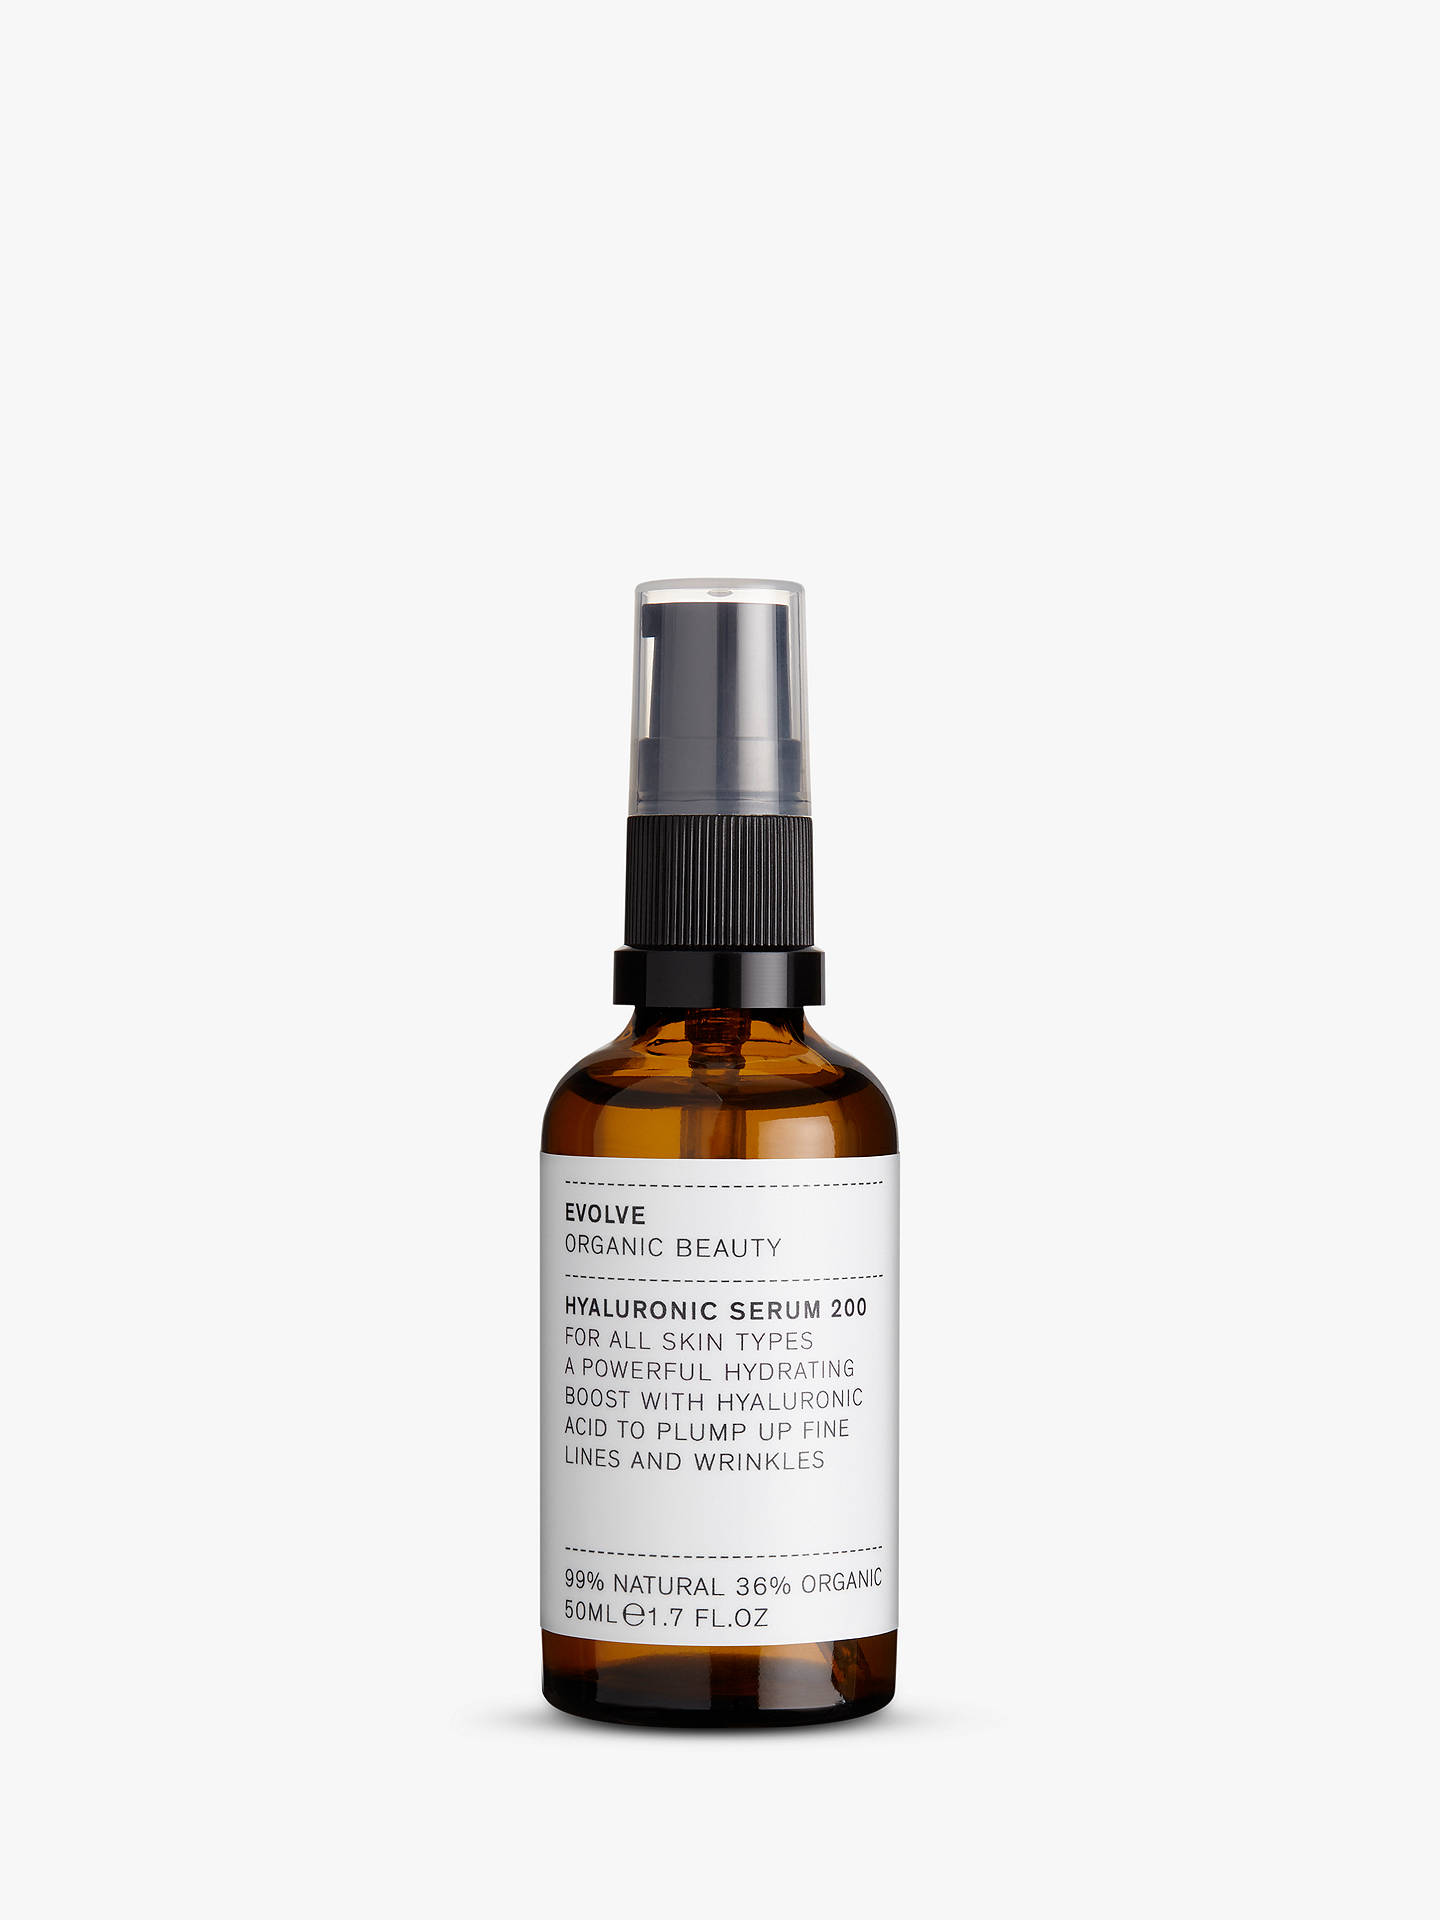 Evolve Organic Beauty Hyaluronic Serum 200, 50ml by Evolve Organic Beauty